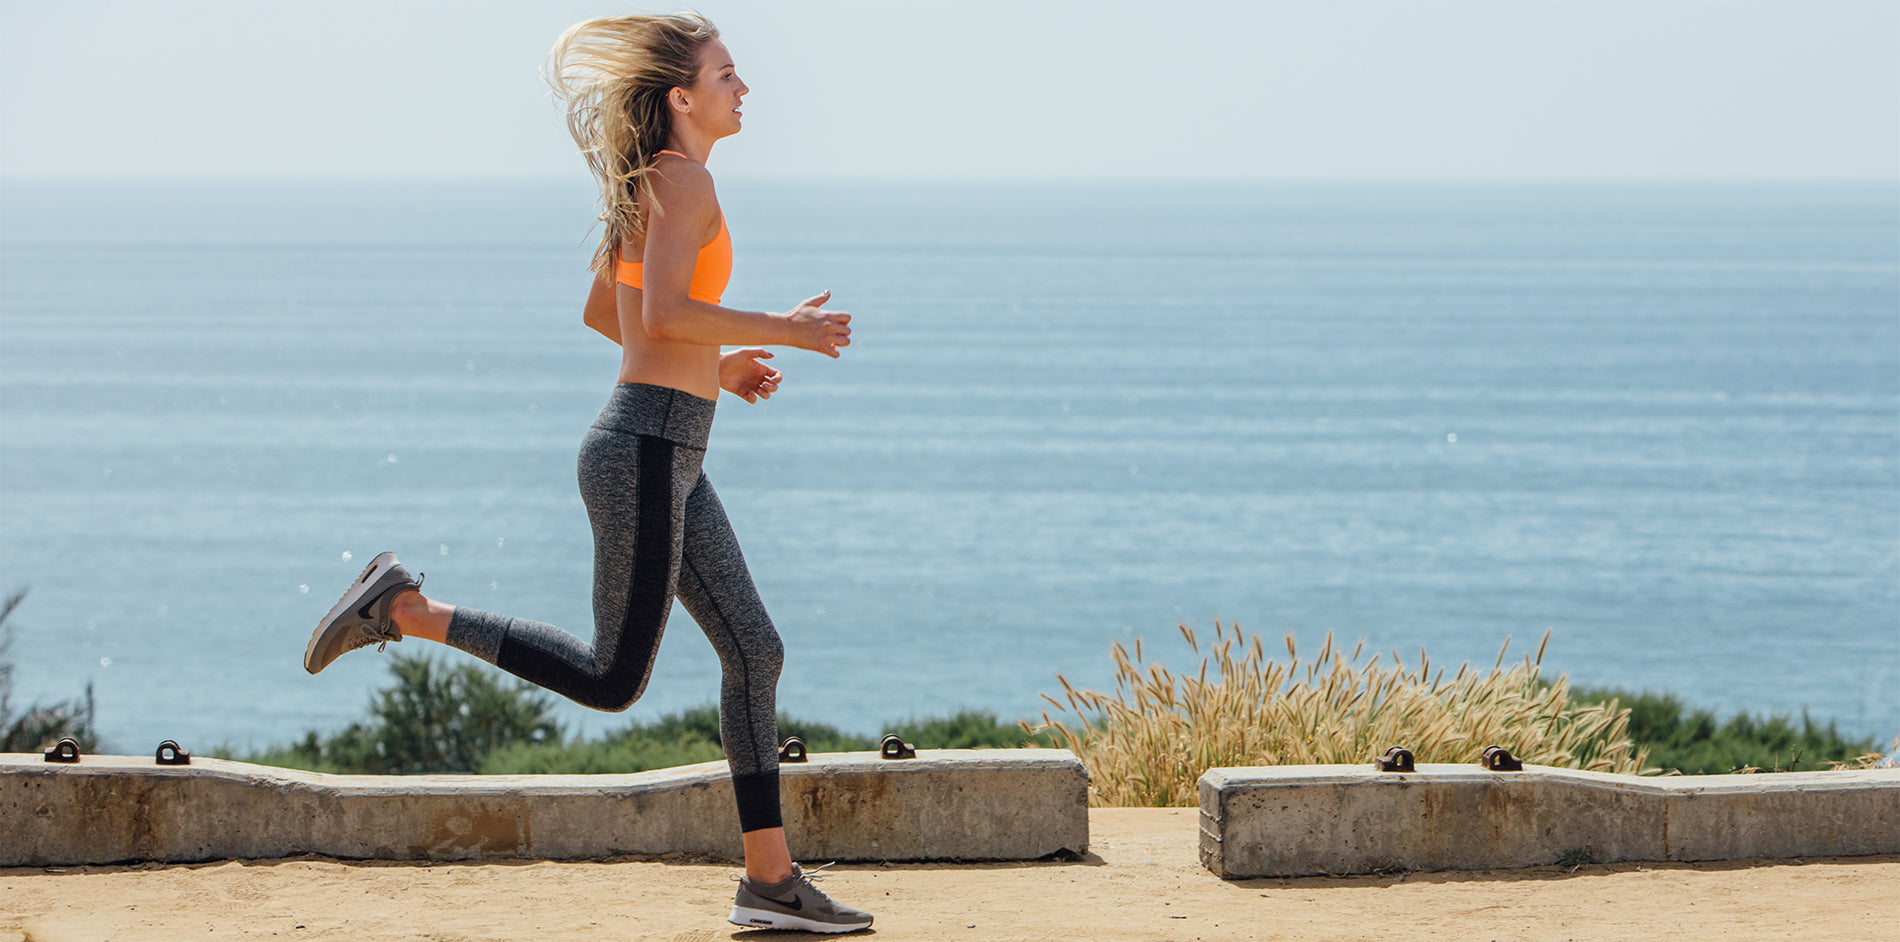 SIX OUTDOOR WORKOUTS TO TRY THIS SUMMER